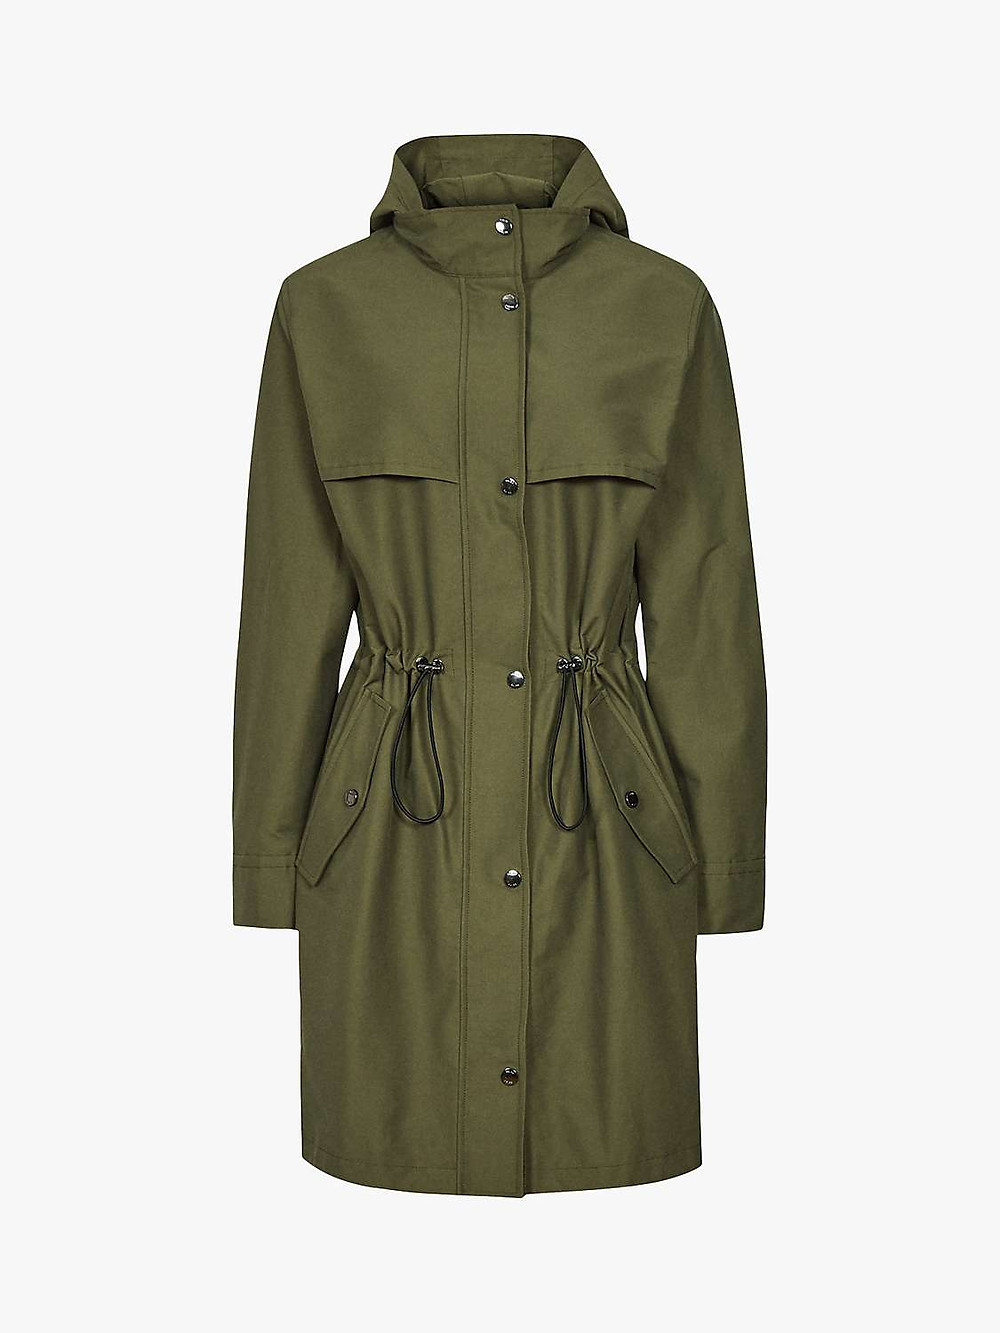 Reiss Lightweight Khaki Parka, The Winter Coat, A Practical Buying Guide, The Image Tree Blog